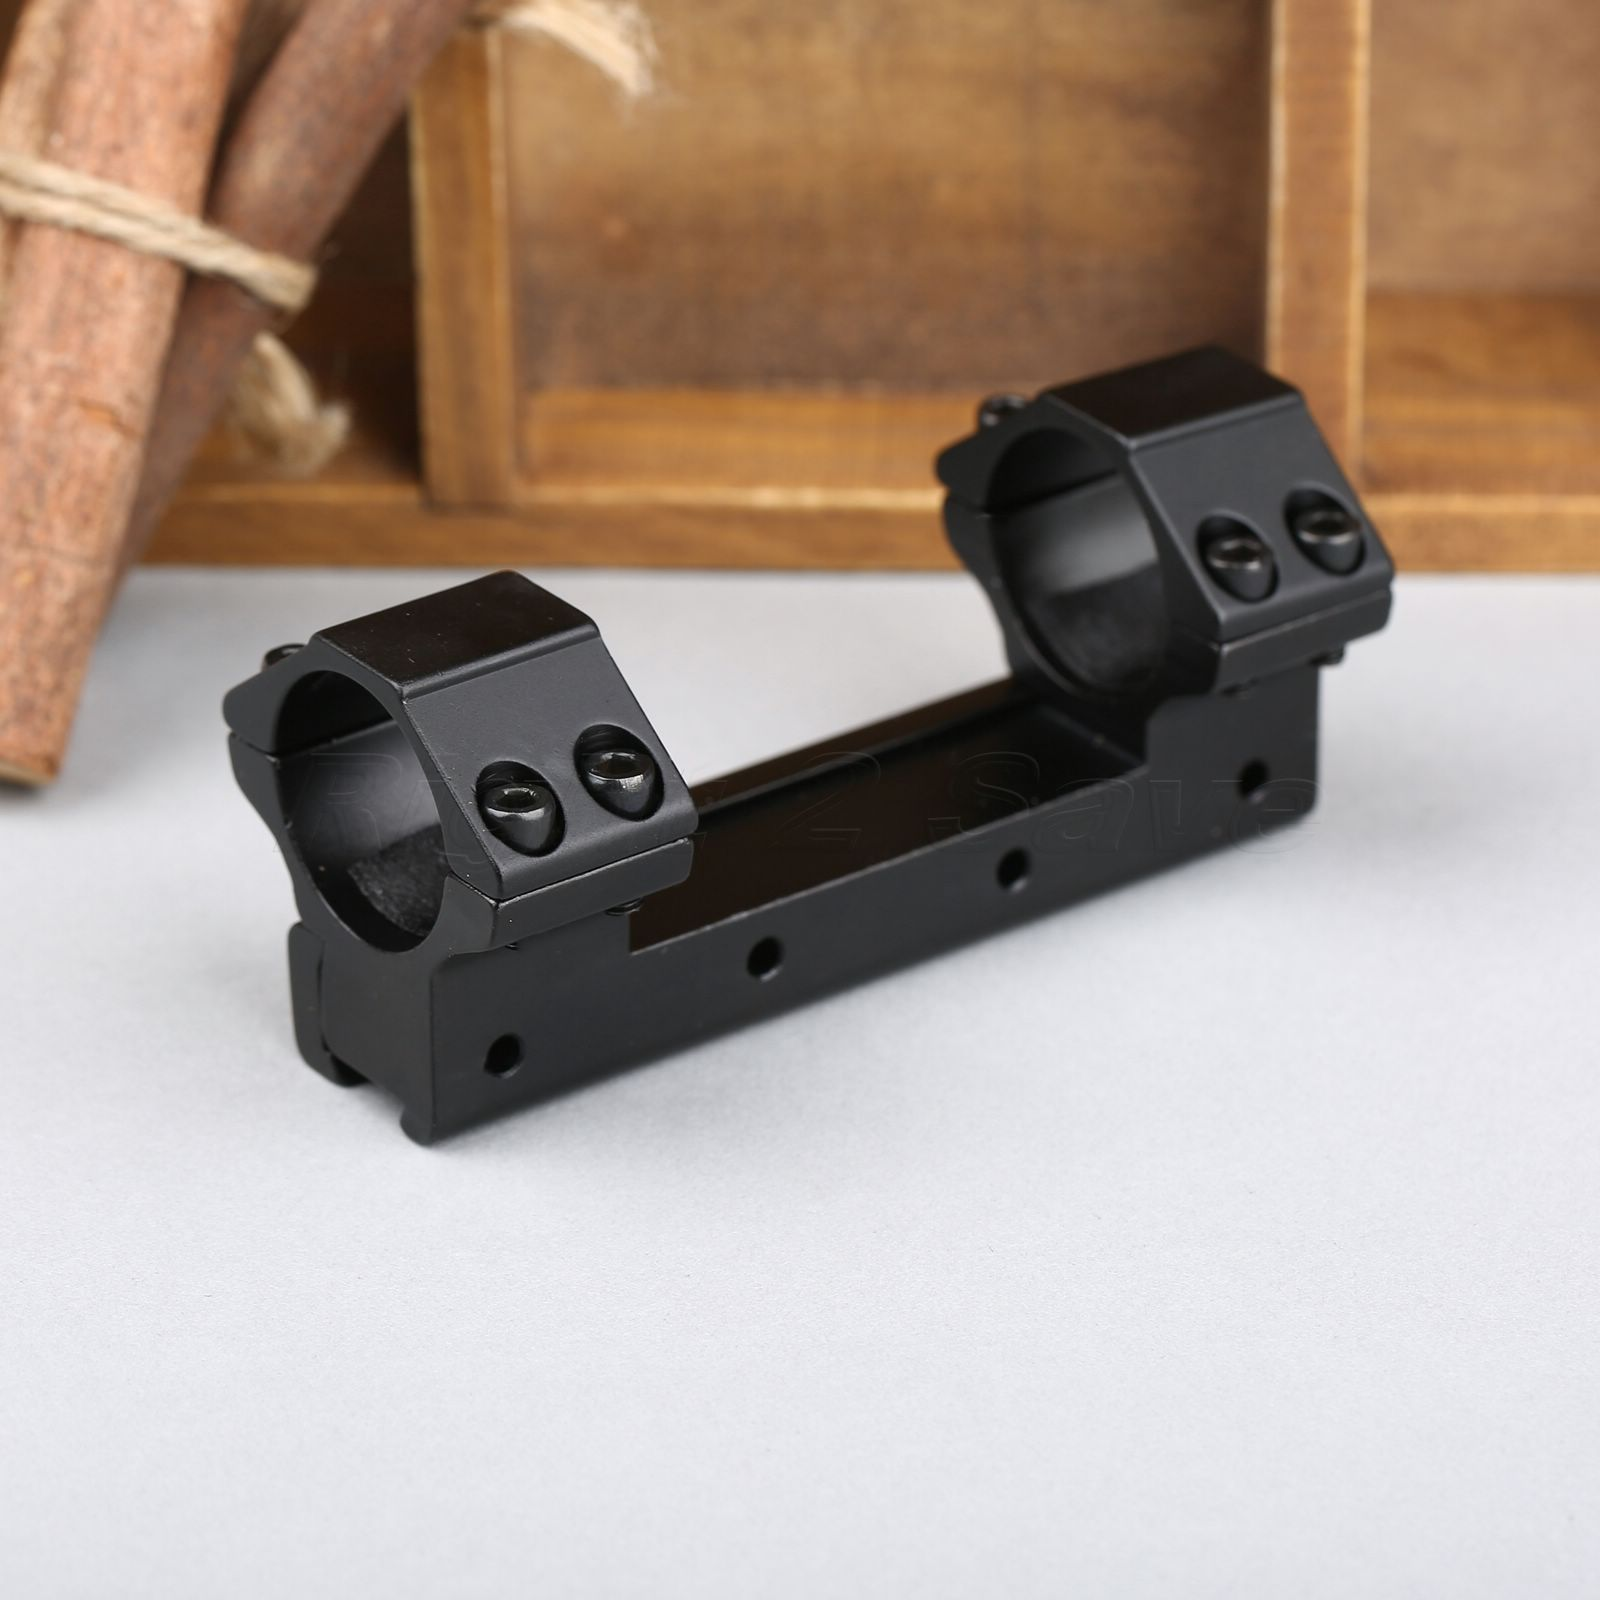 9 99 Aud One Piece 25 4mm 1 Dual Rings Low Profile Flat Scope Mount 11mm Dovetail Rail Ebay Lifestyle Scope Mount Ebay 11mm